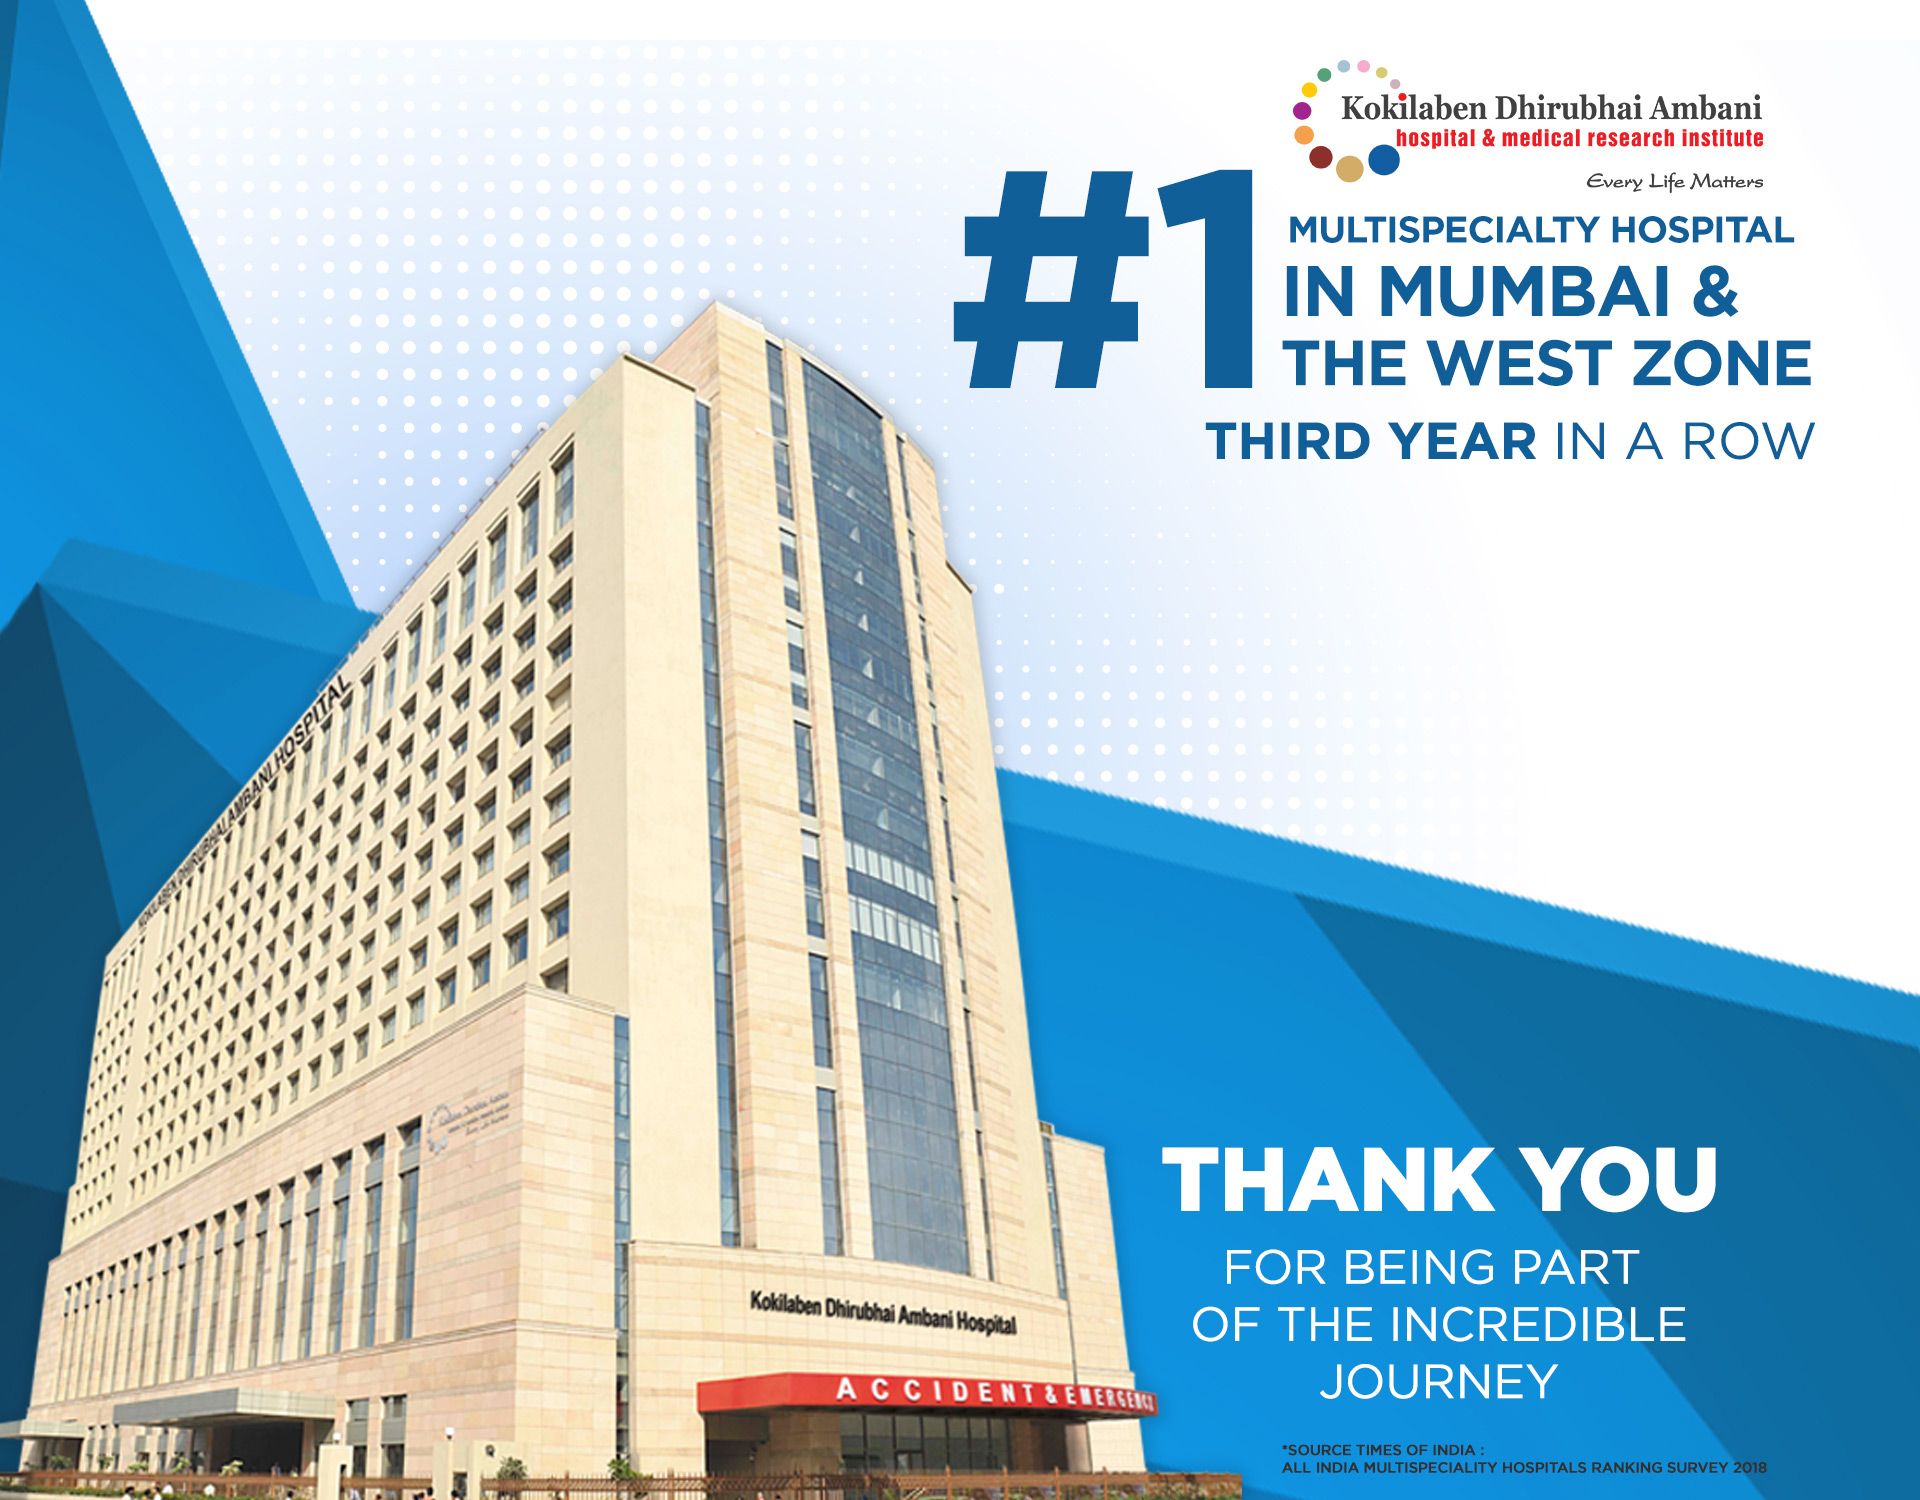 Kokilaben Dhirubhai Ambani Hospital - no.1 multispeciality hospital in Mumbai & the west zone